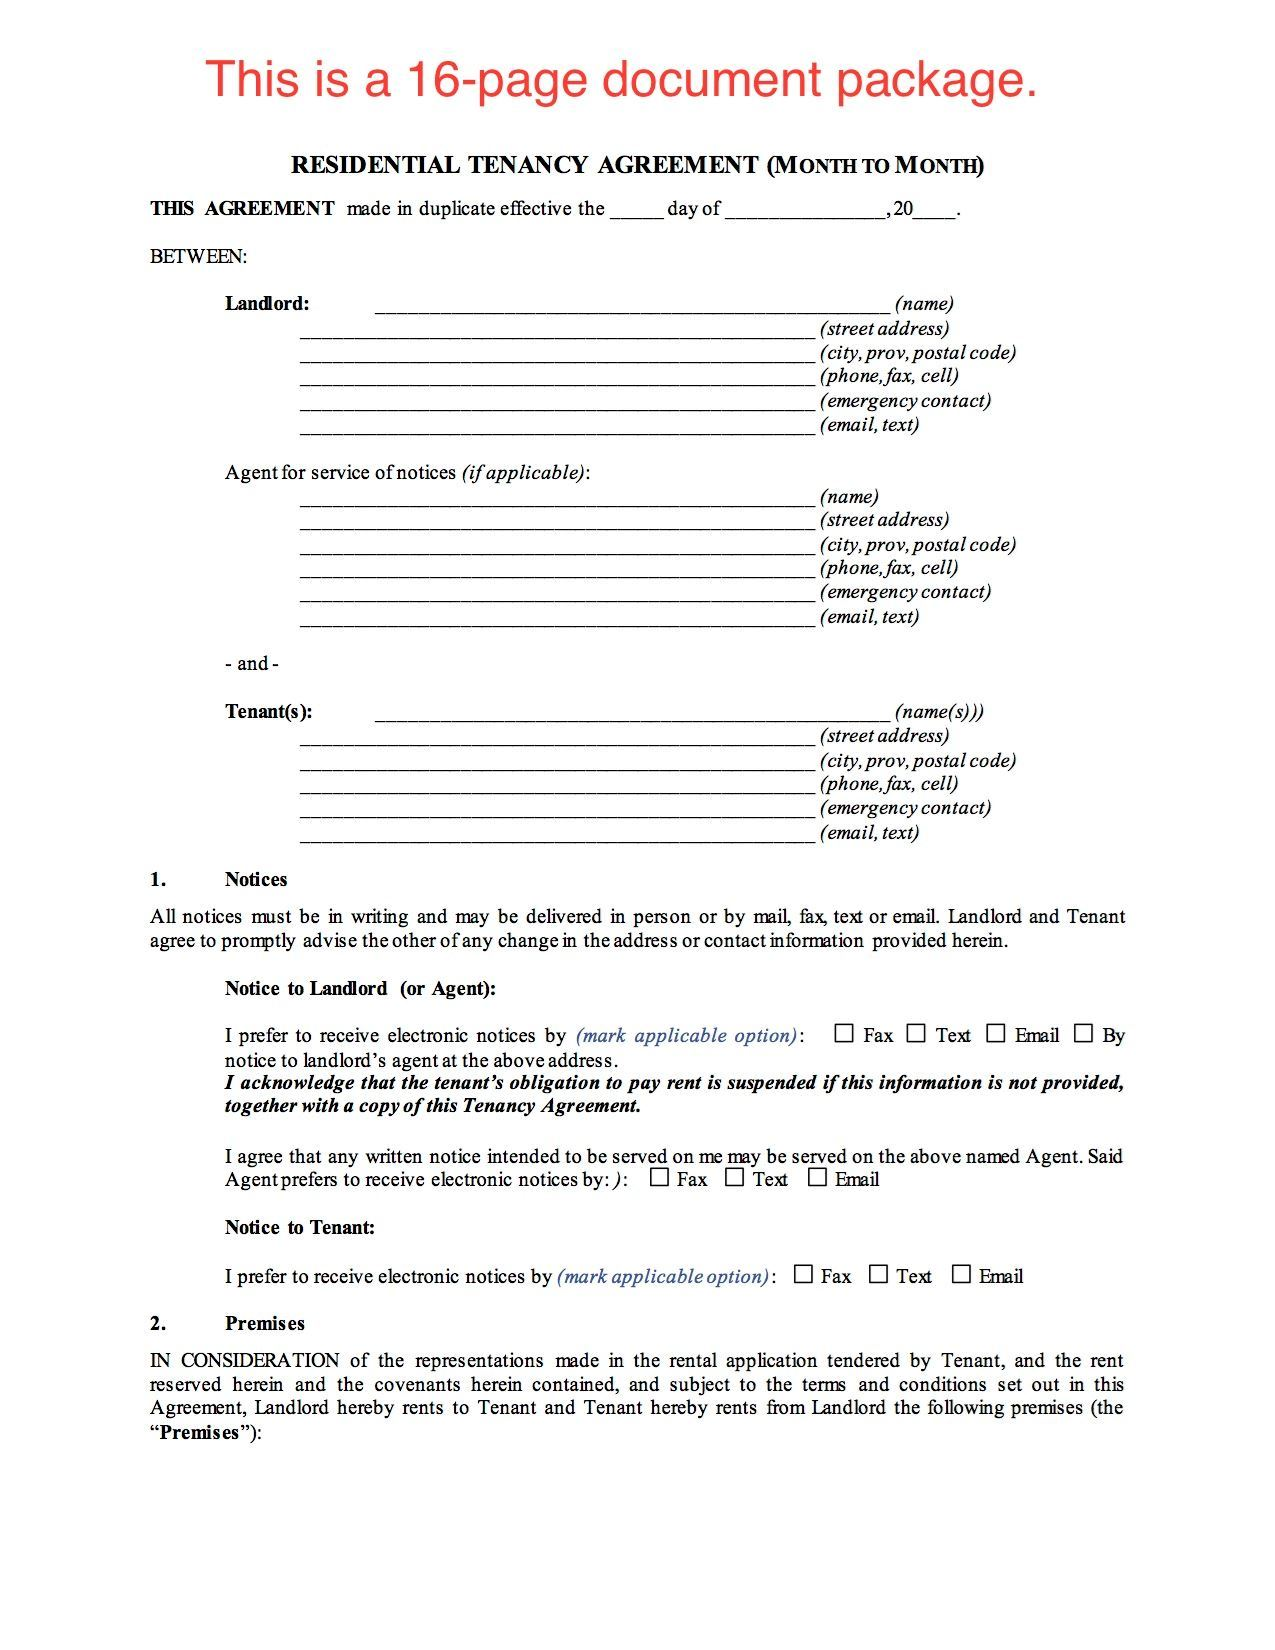 landlords contract template - saskatchewan residential tenancy agreement month to month